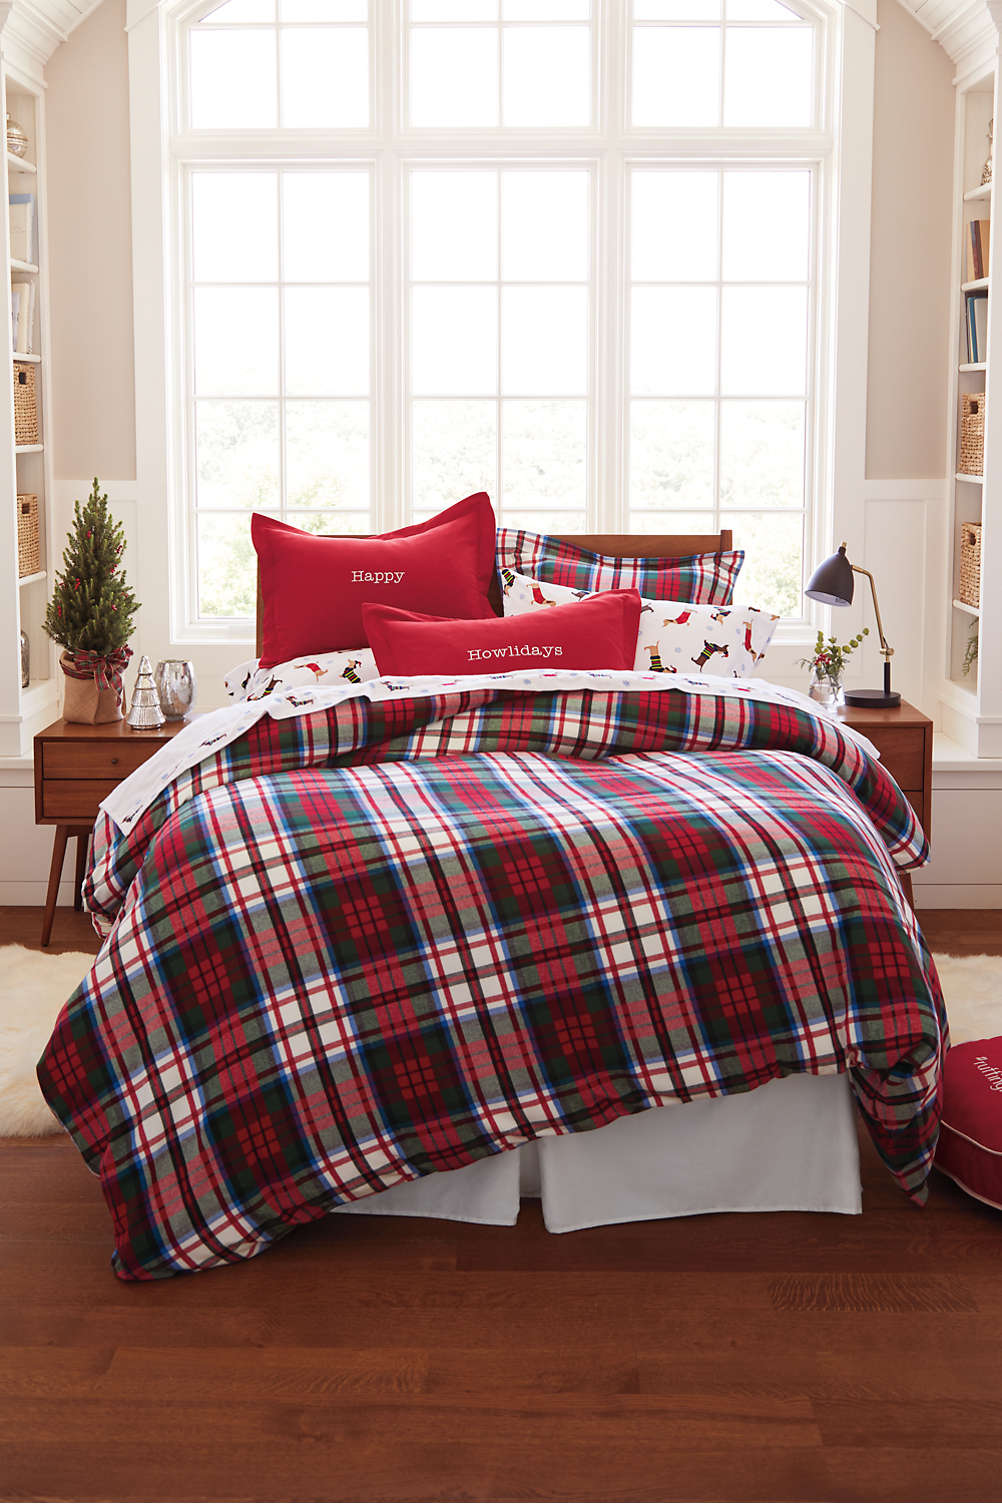 Velvet flannel plaid duvet cover from lands end